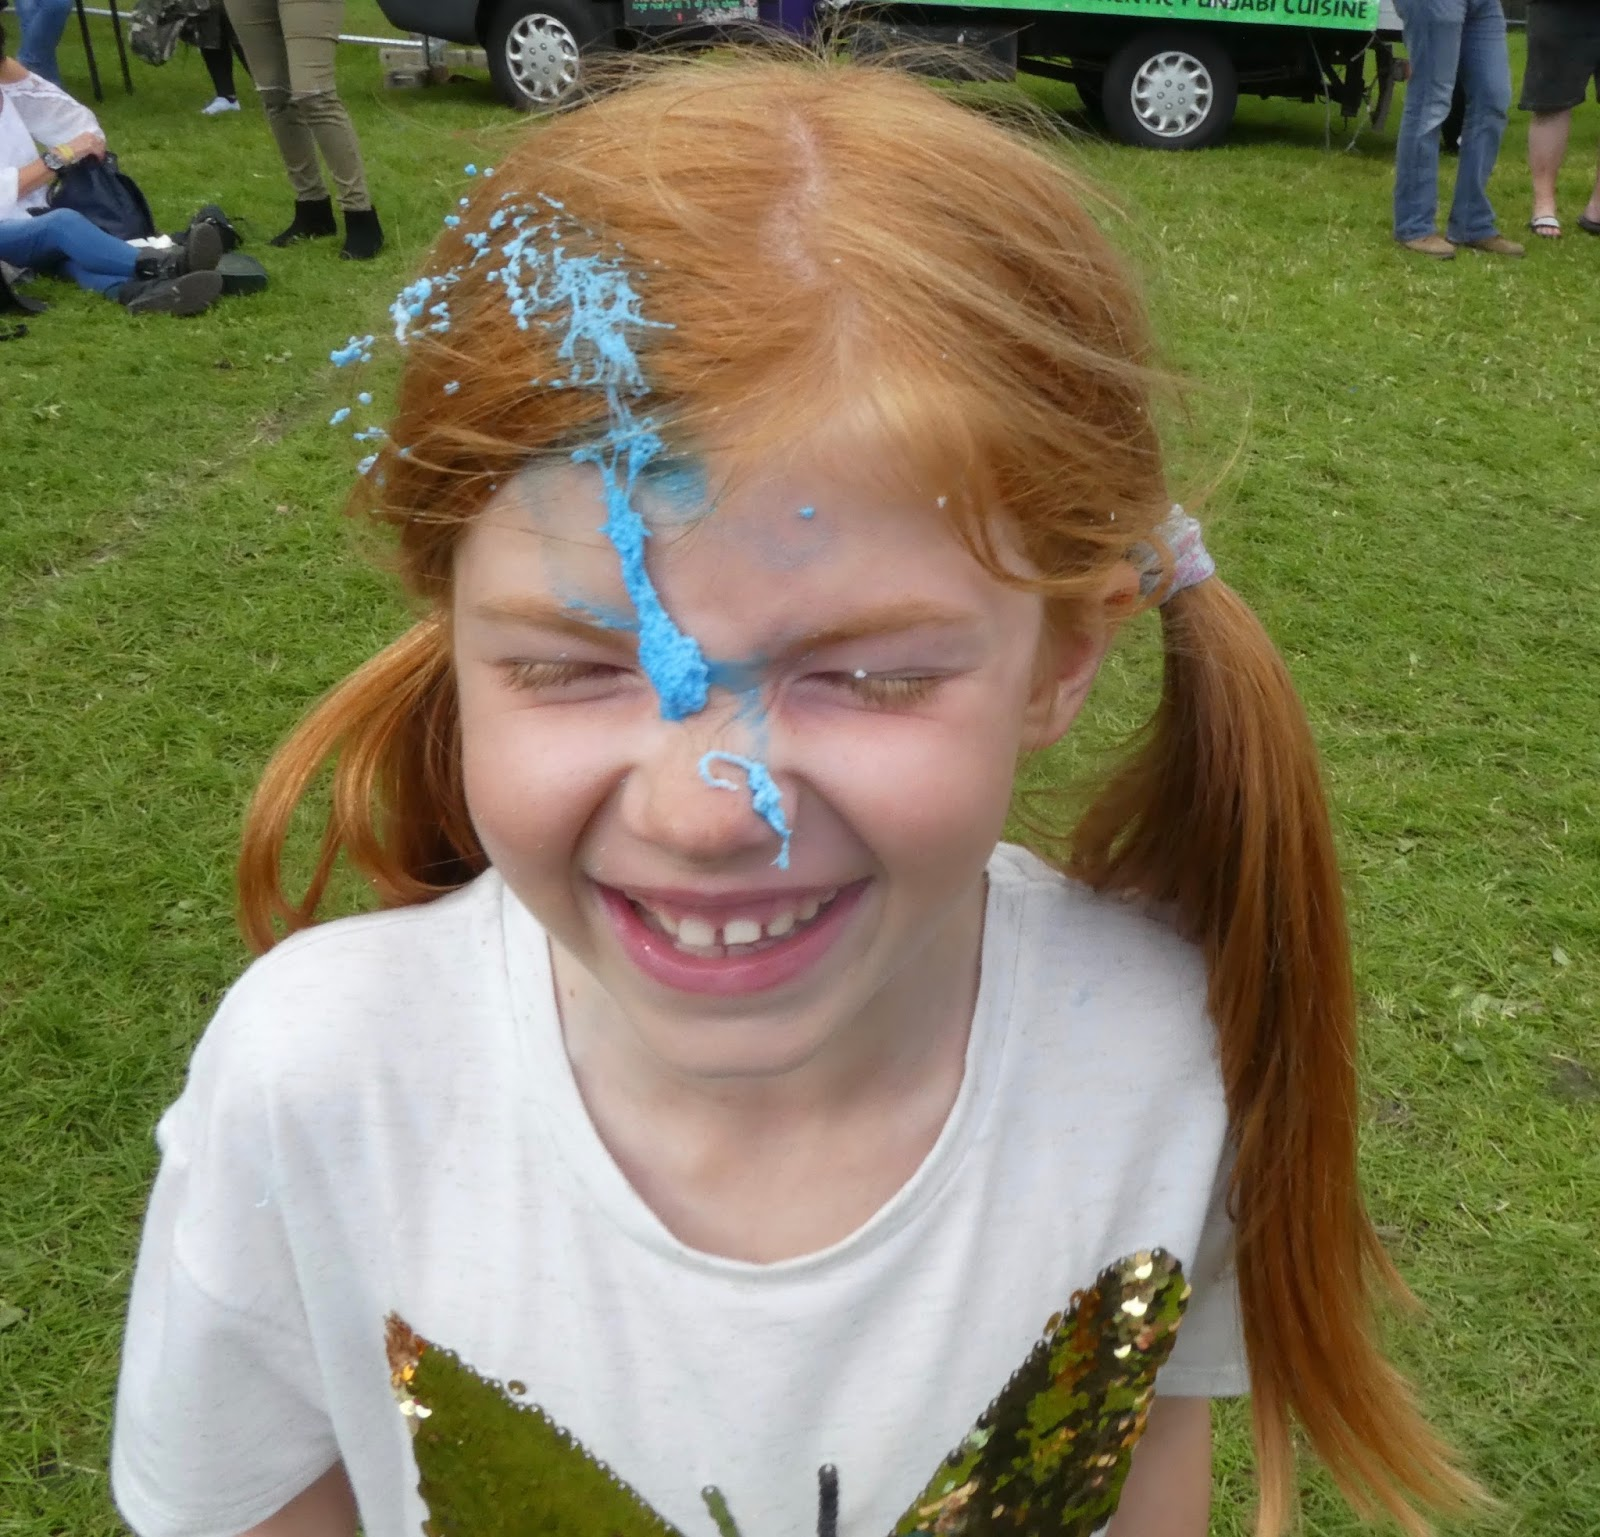 Corbridge Festival 2016 - A Review - Silly string